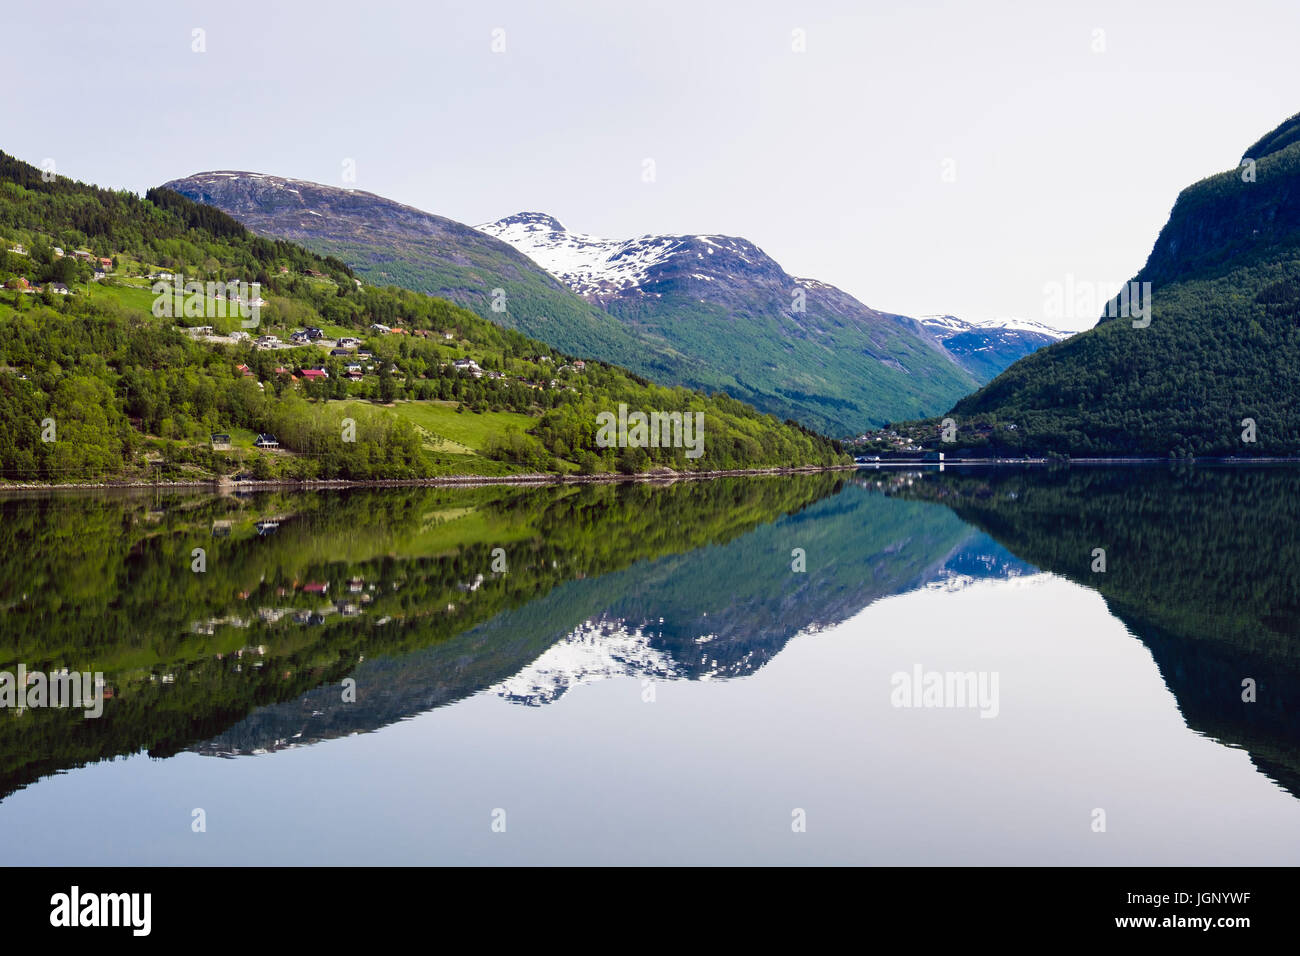 Reflections in calm waters of Nordfjorden Fjord on Norwegian west coast near Olden, Sogn og Fjordane county, Norway, - Stock Image